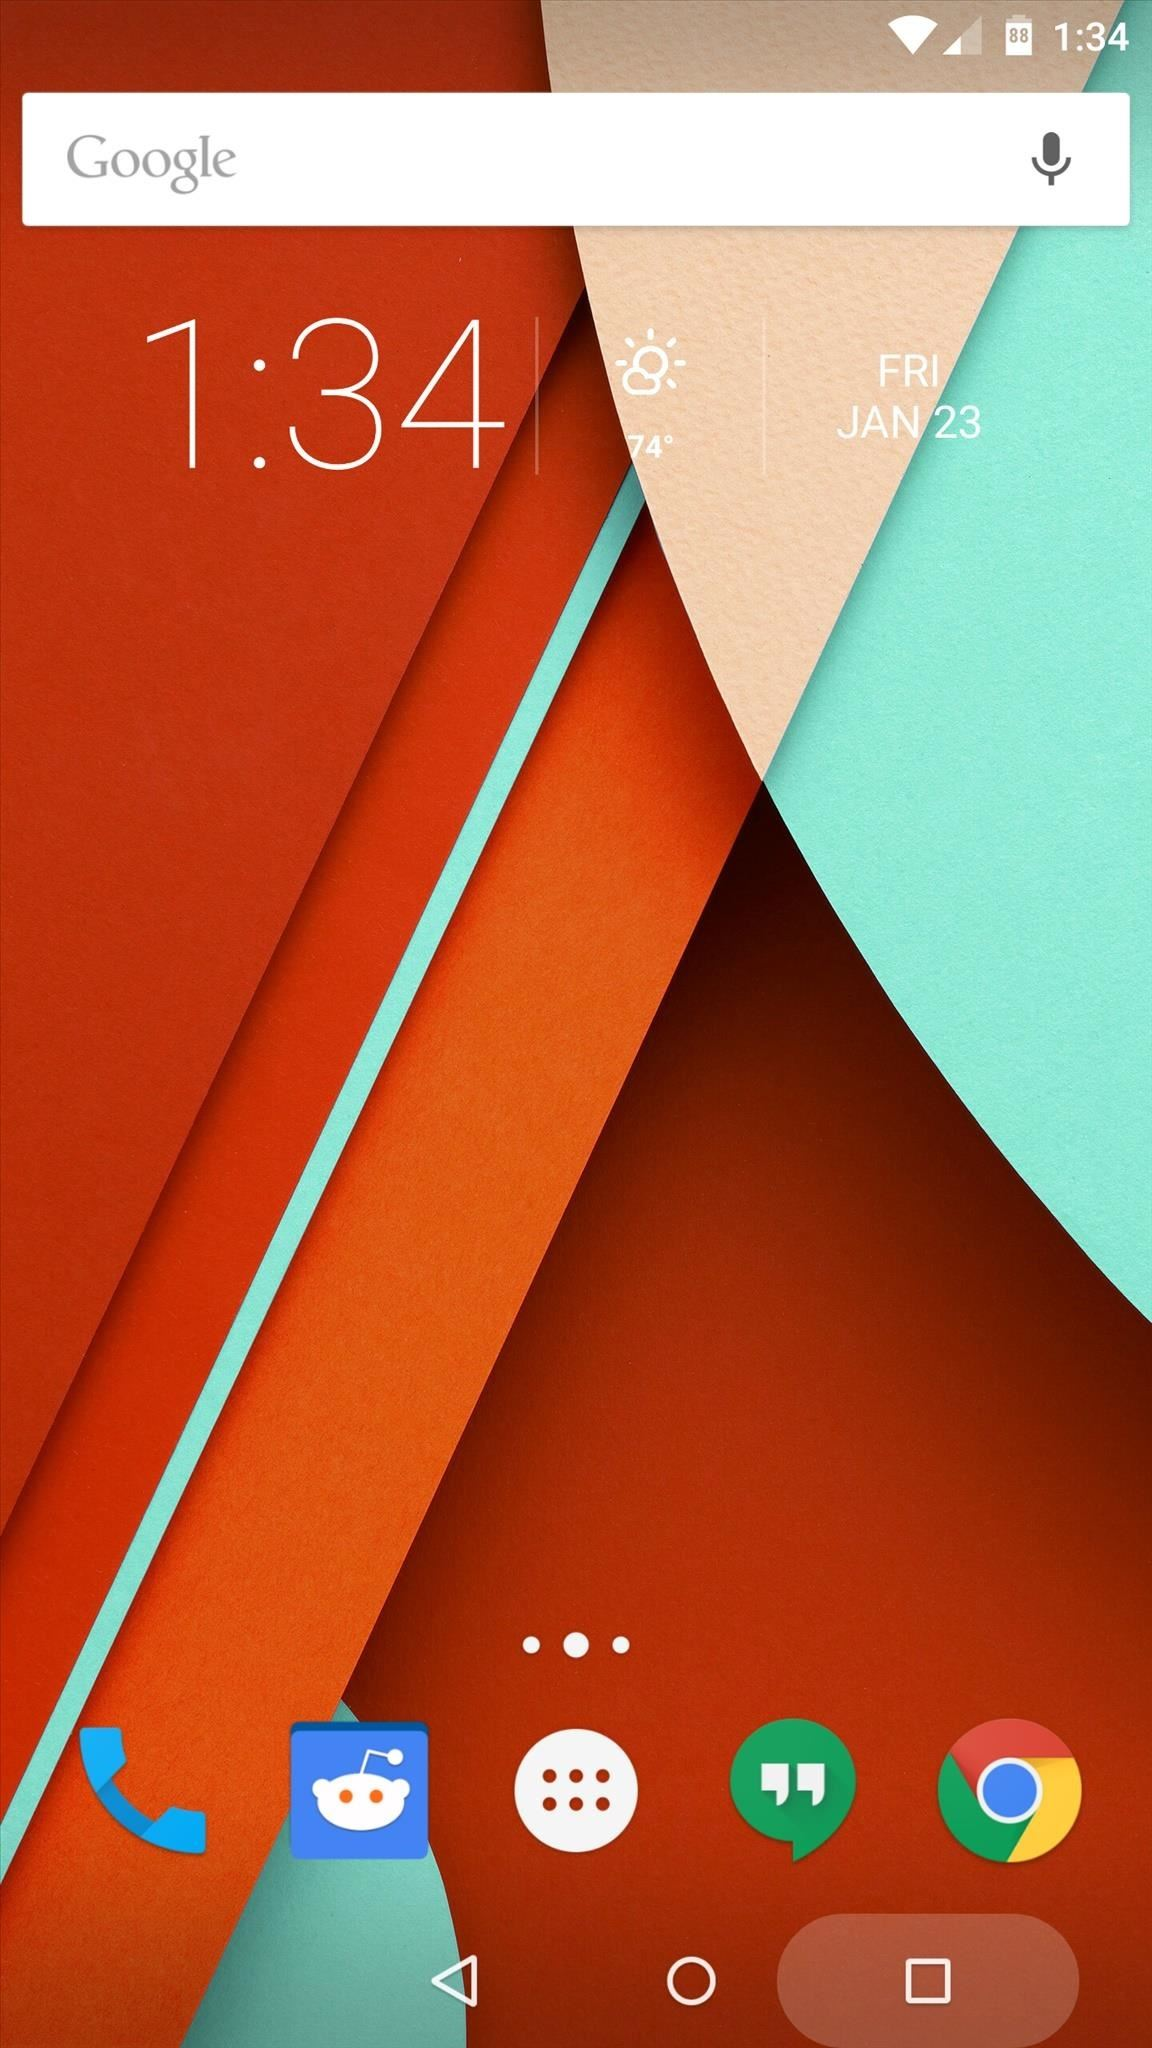 Get Custom ROM Options on Your Nexus Without Installing a Custom ROM